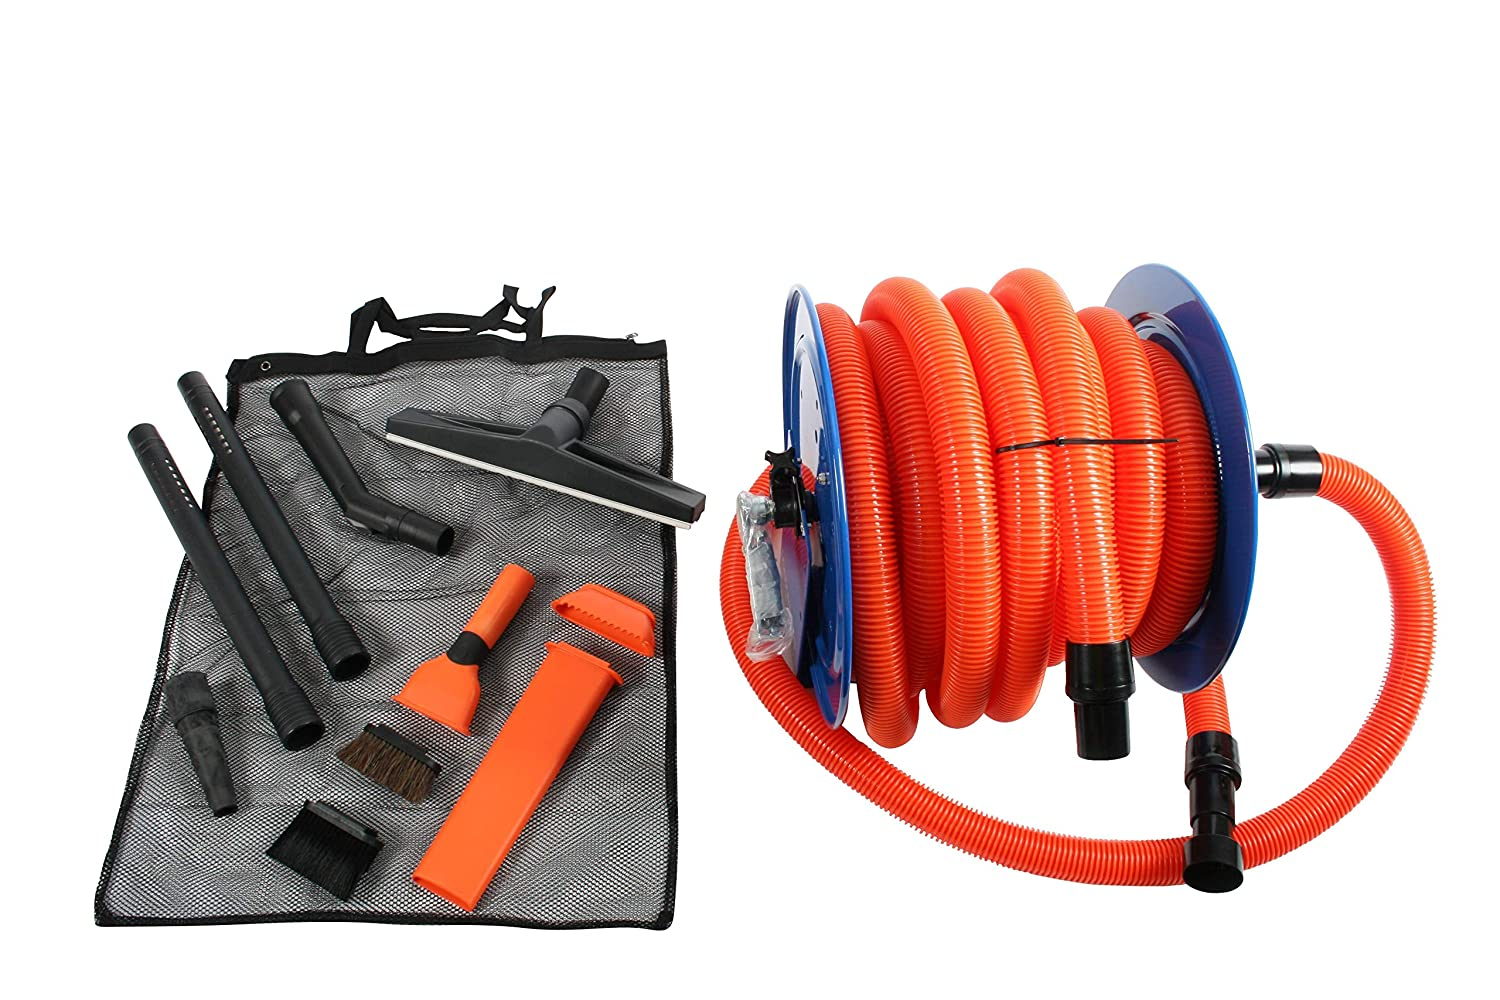 Hose for Shop Vacuums Cen-Tec Systems 94082 Industrial Steel Reel and Attachment Kit with 50 Ft Orange